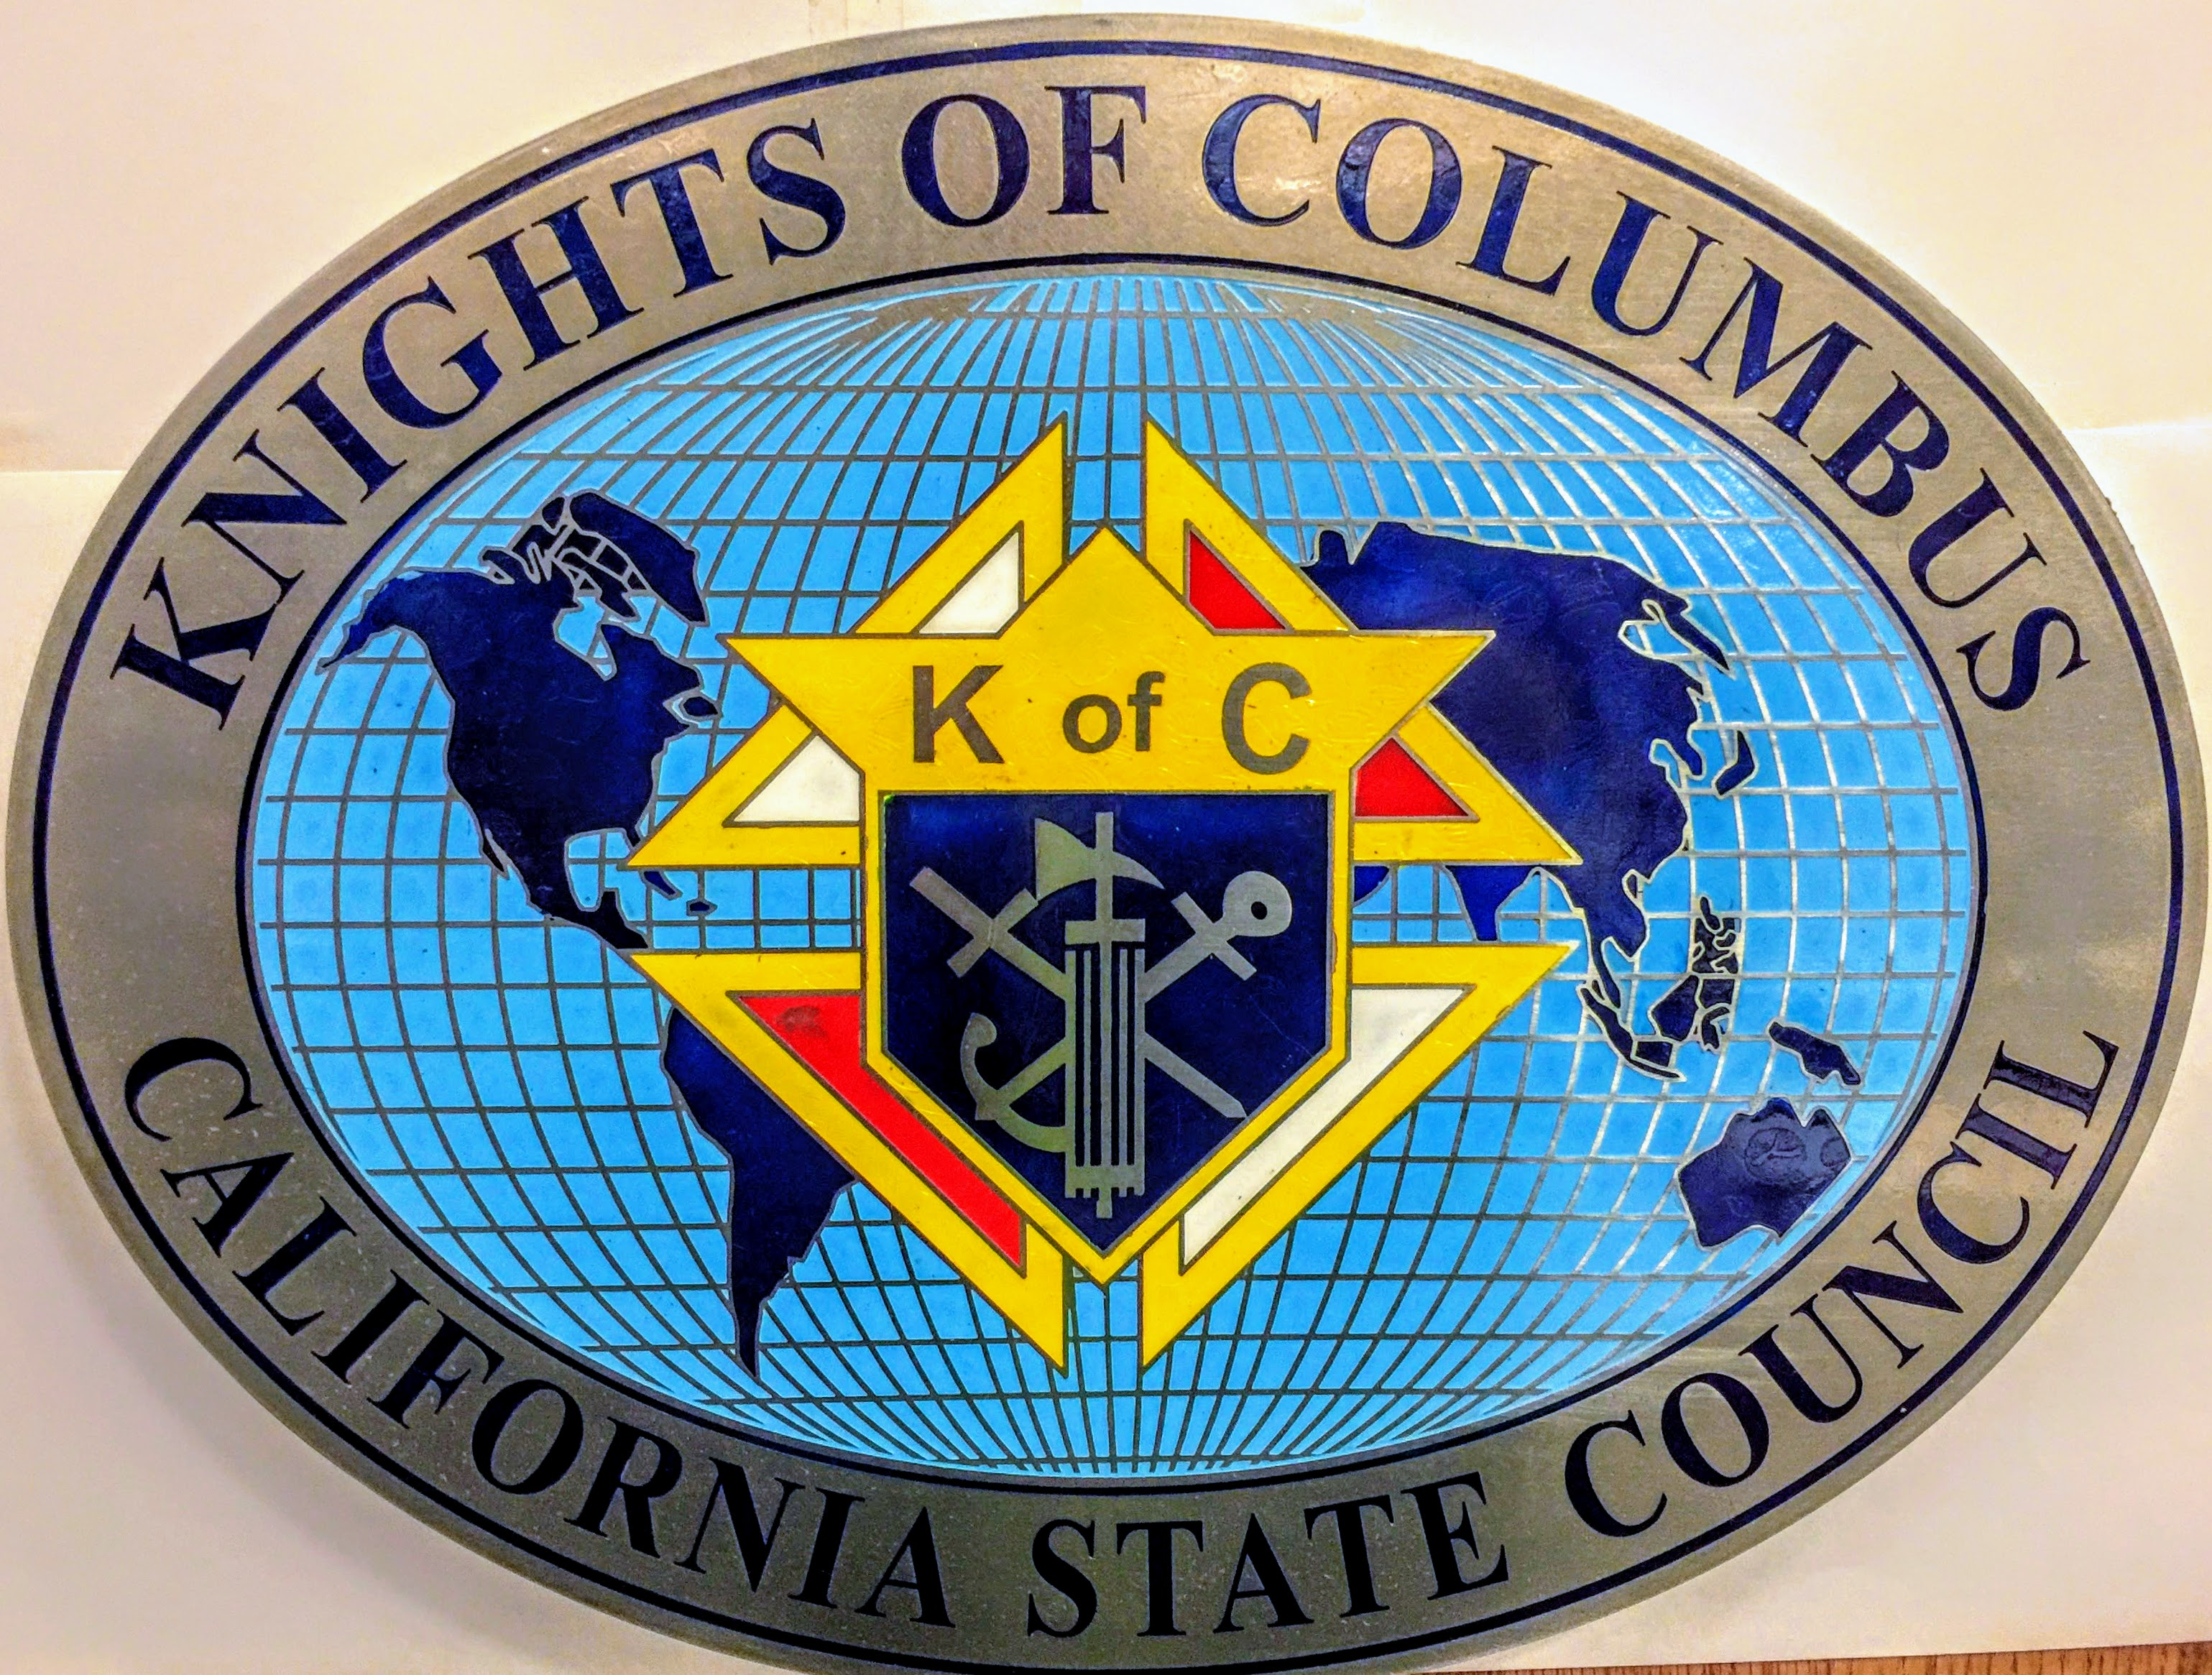 Officers knights of columbus california state council buycottarizona